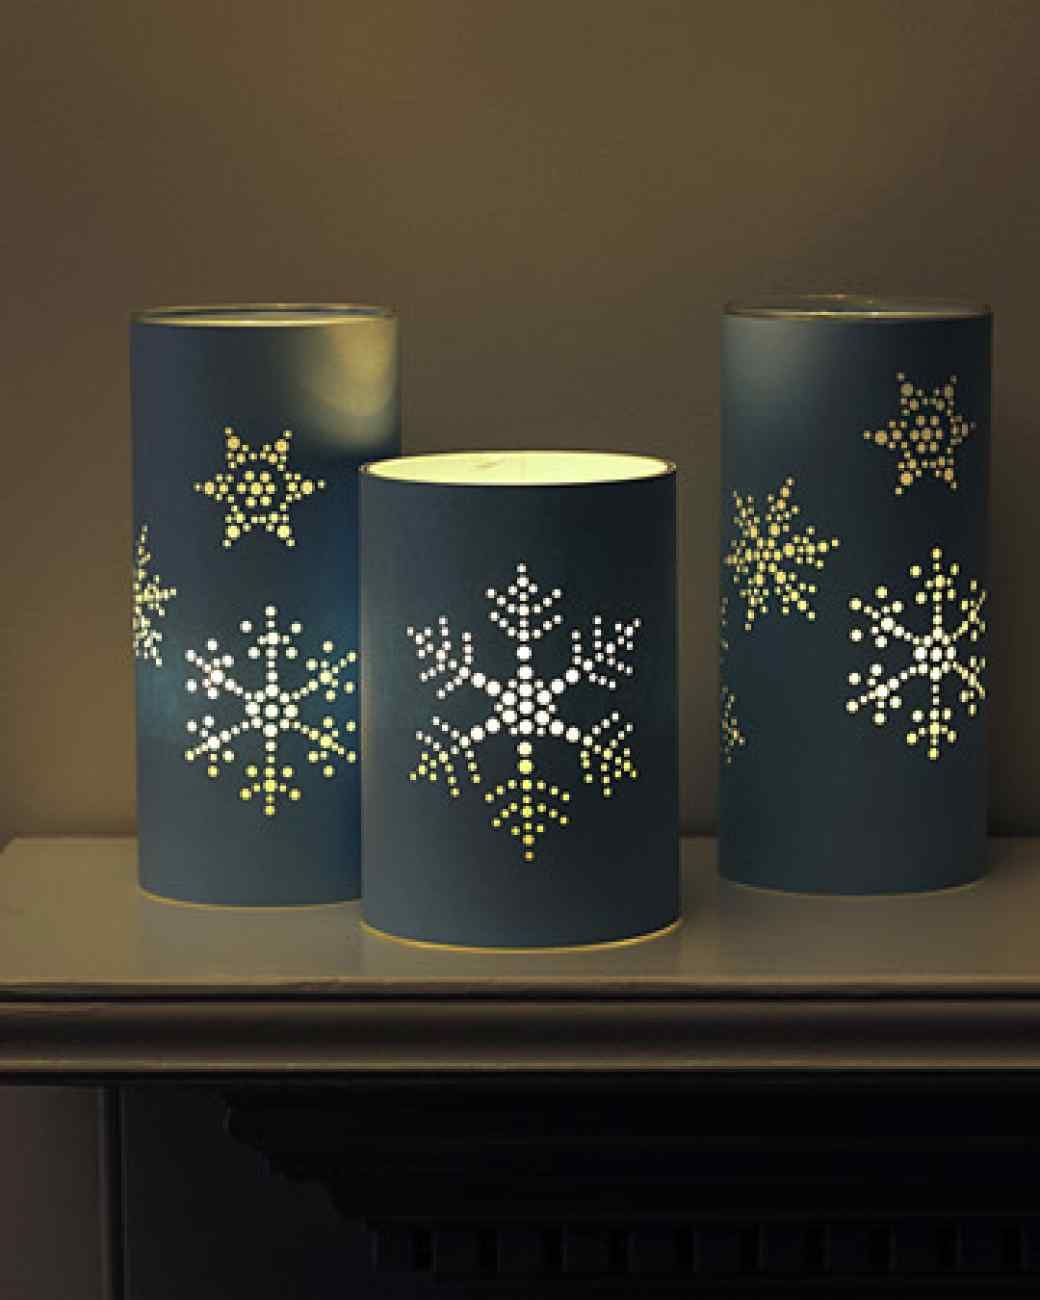 Decorating for the holidays doesn't have to be stressful or difficult to be beautiful. Here, we offer simple yet elegant